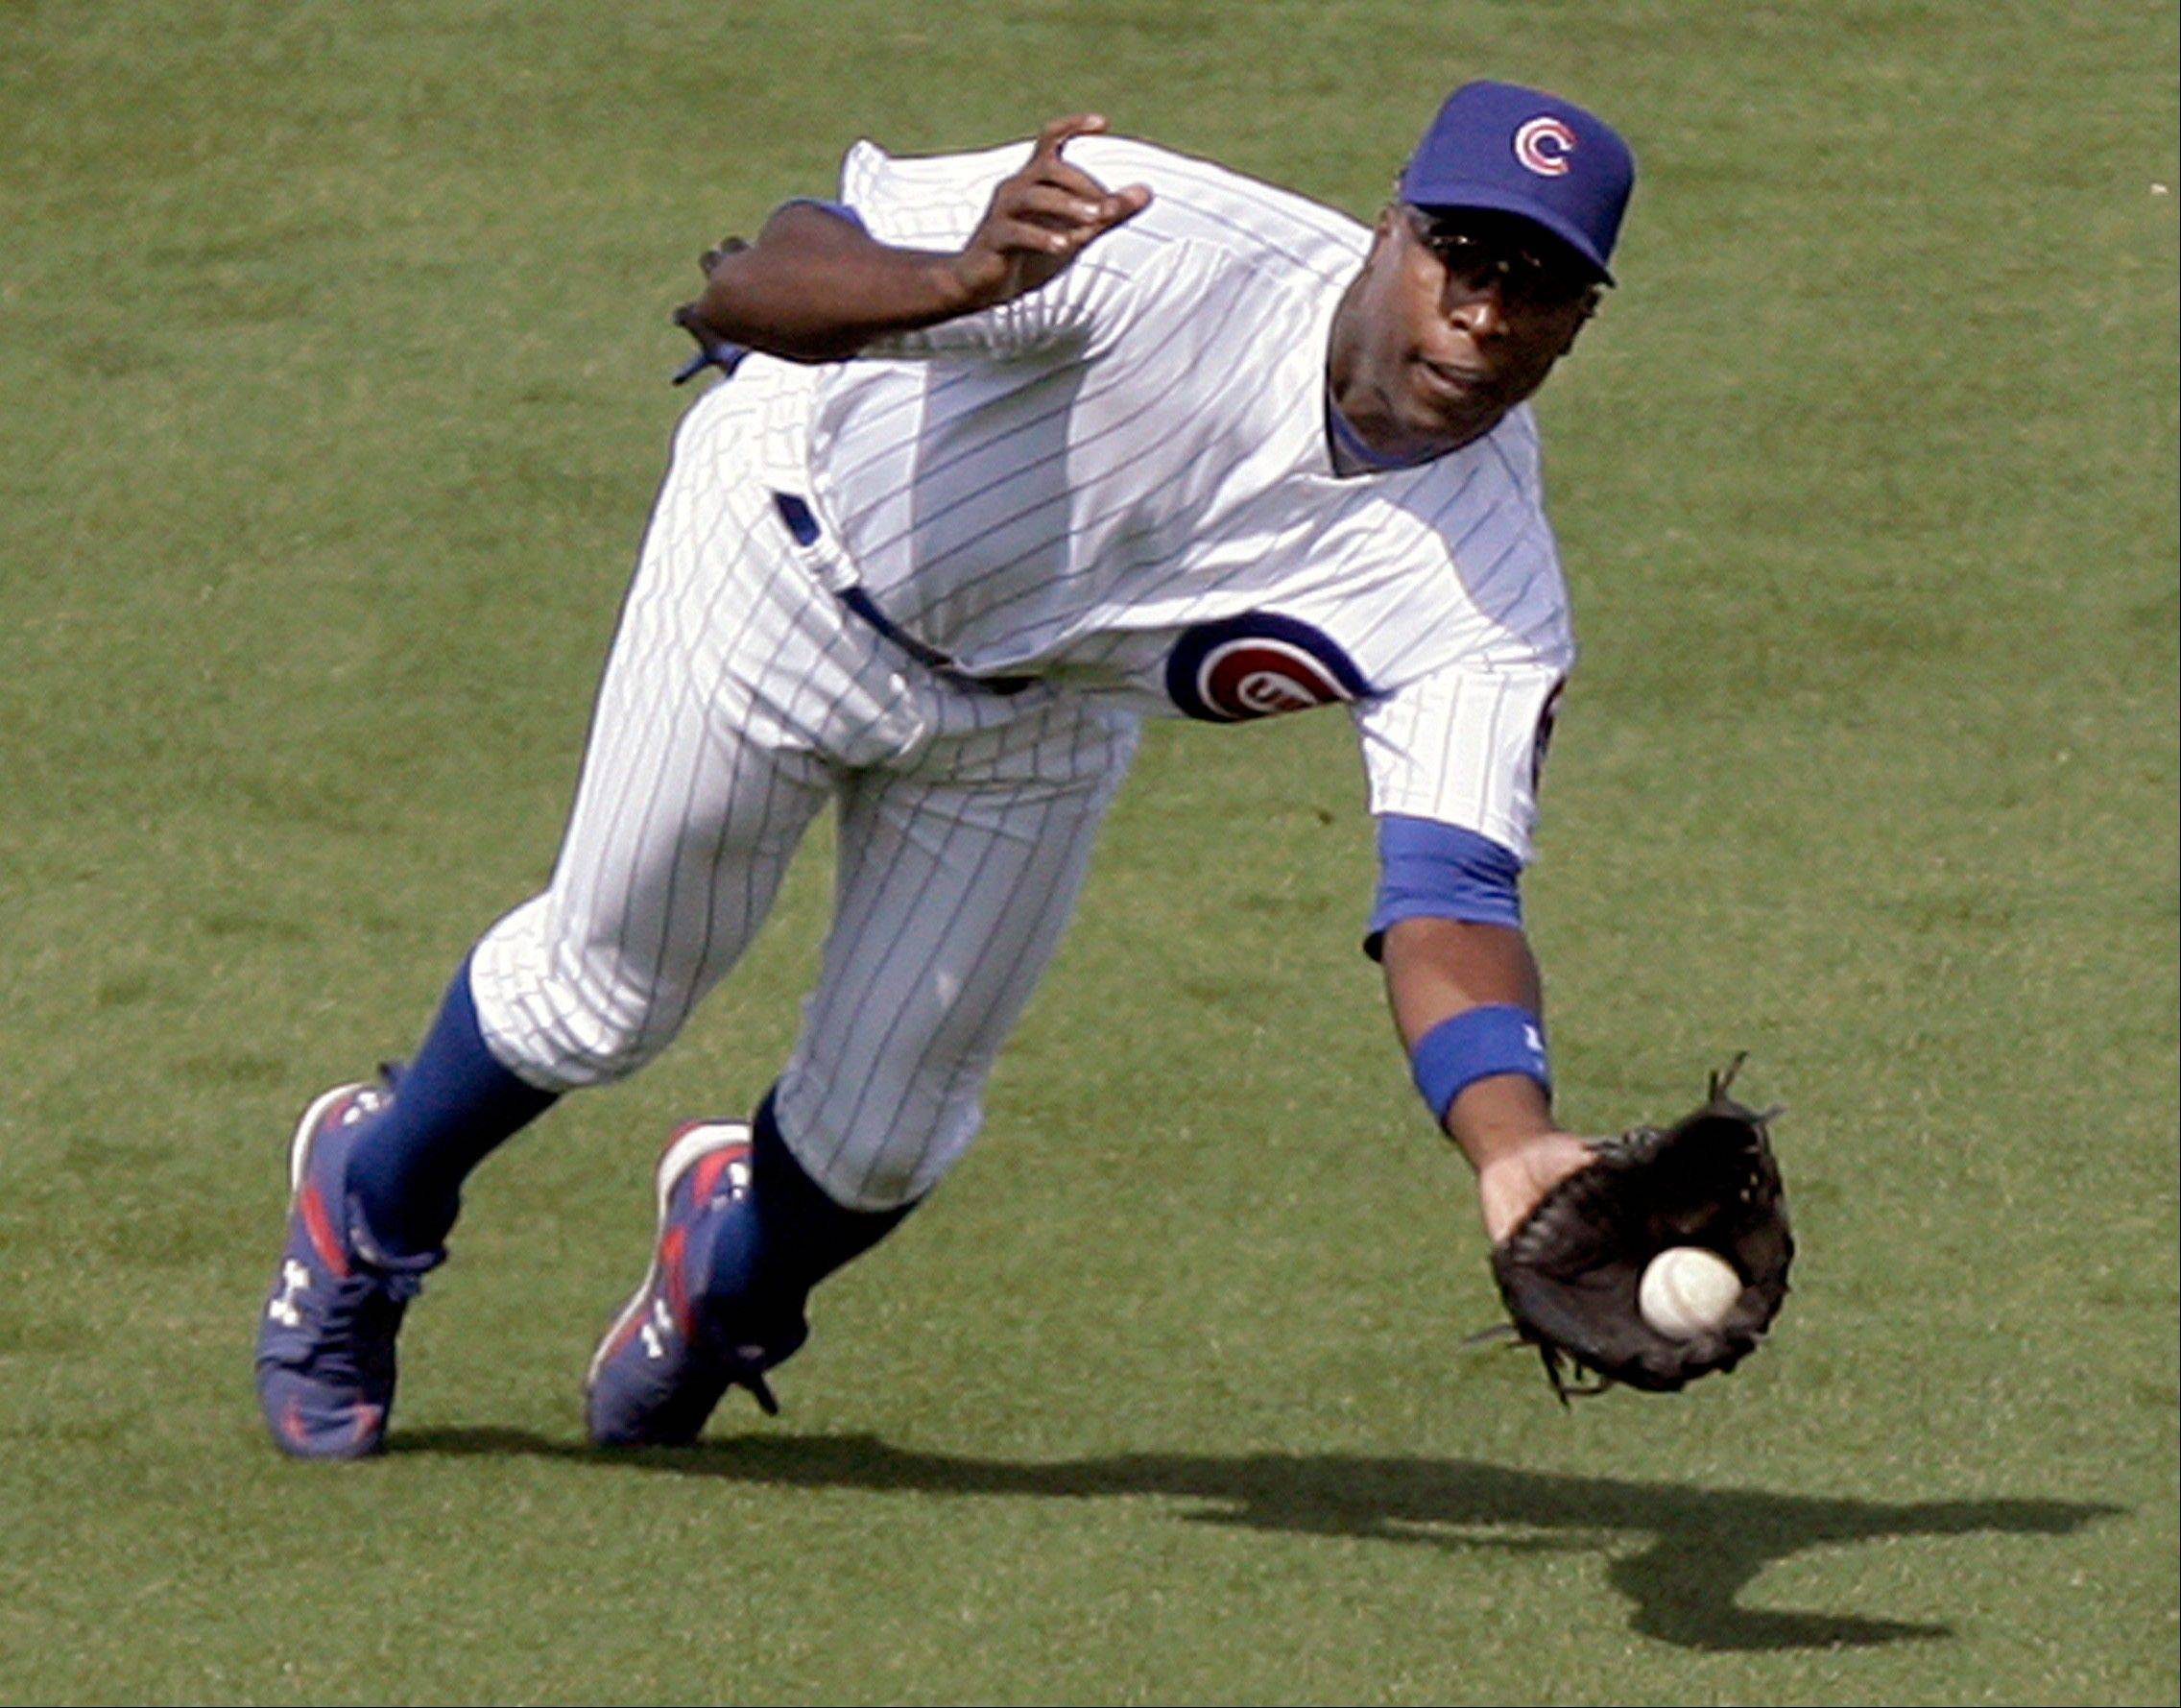 Cubs left fielder Alfonso Soriano lunges to make a catch on a fly ball hit by Chicago White Sox batter Omar Visquel in the second inning of an MLB spring training baseball game Saturday, March 6, 2010, in Mesa, Ariz.